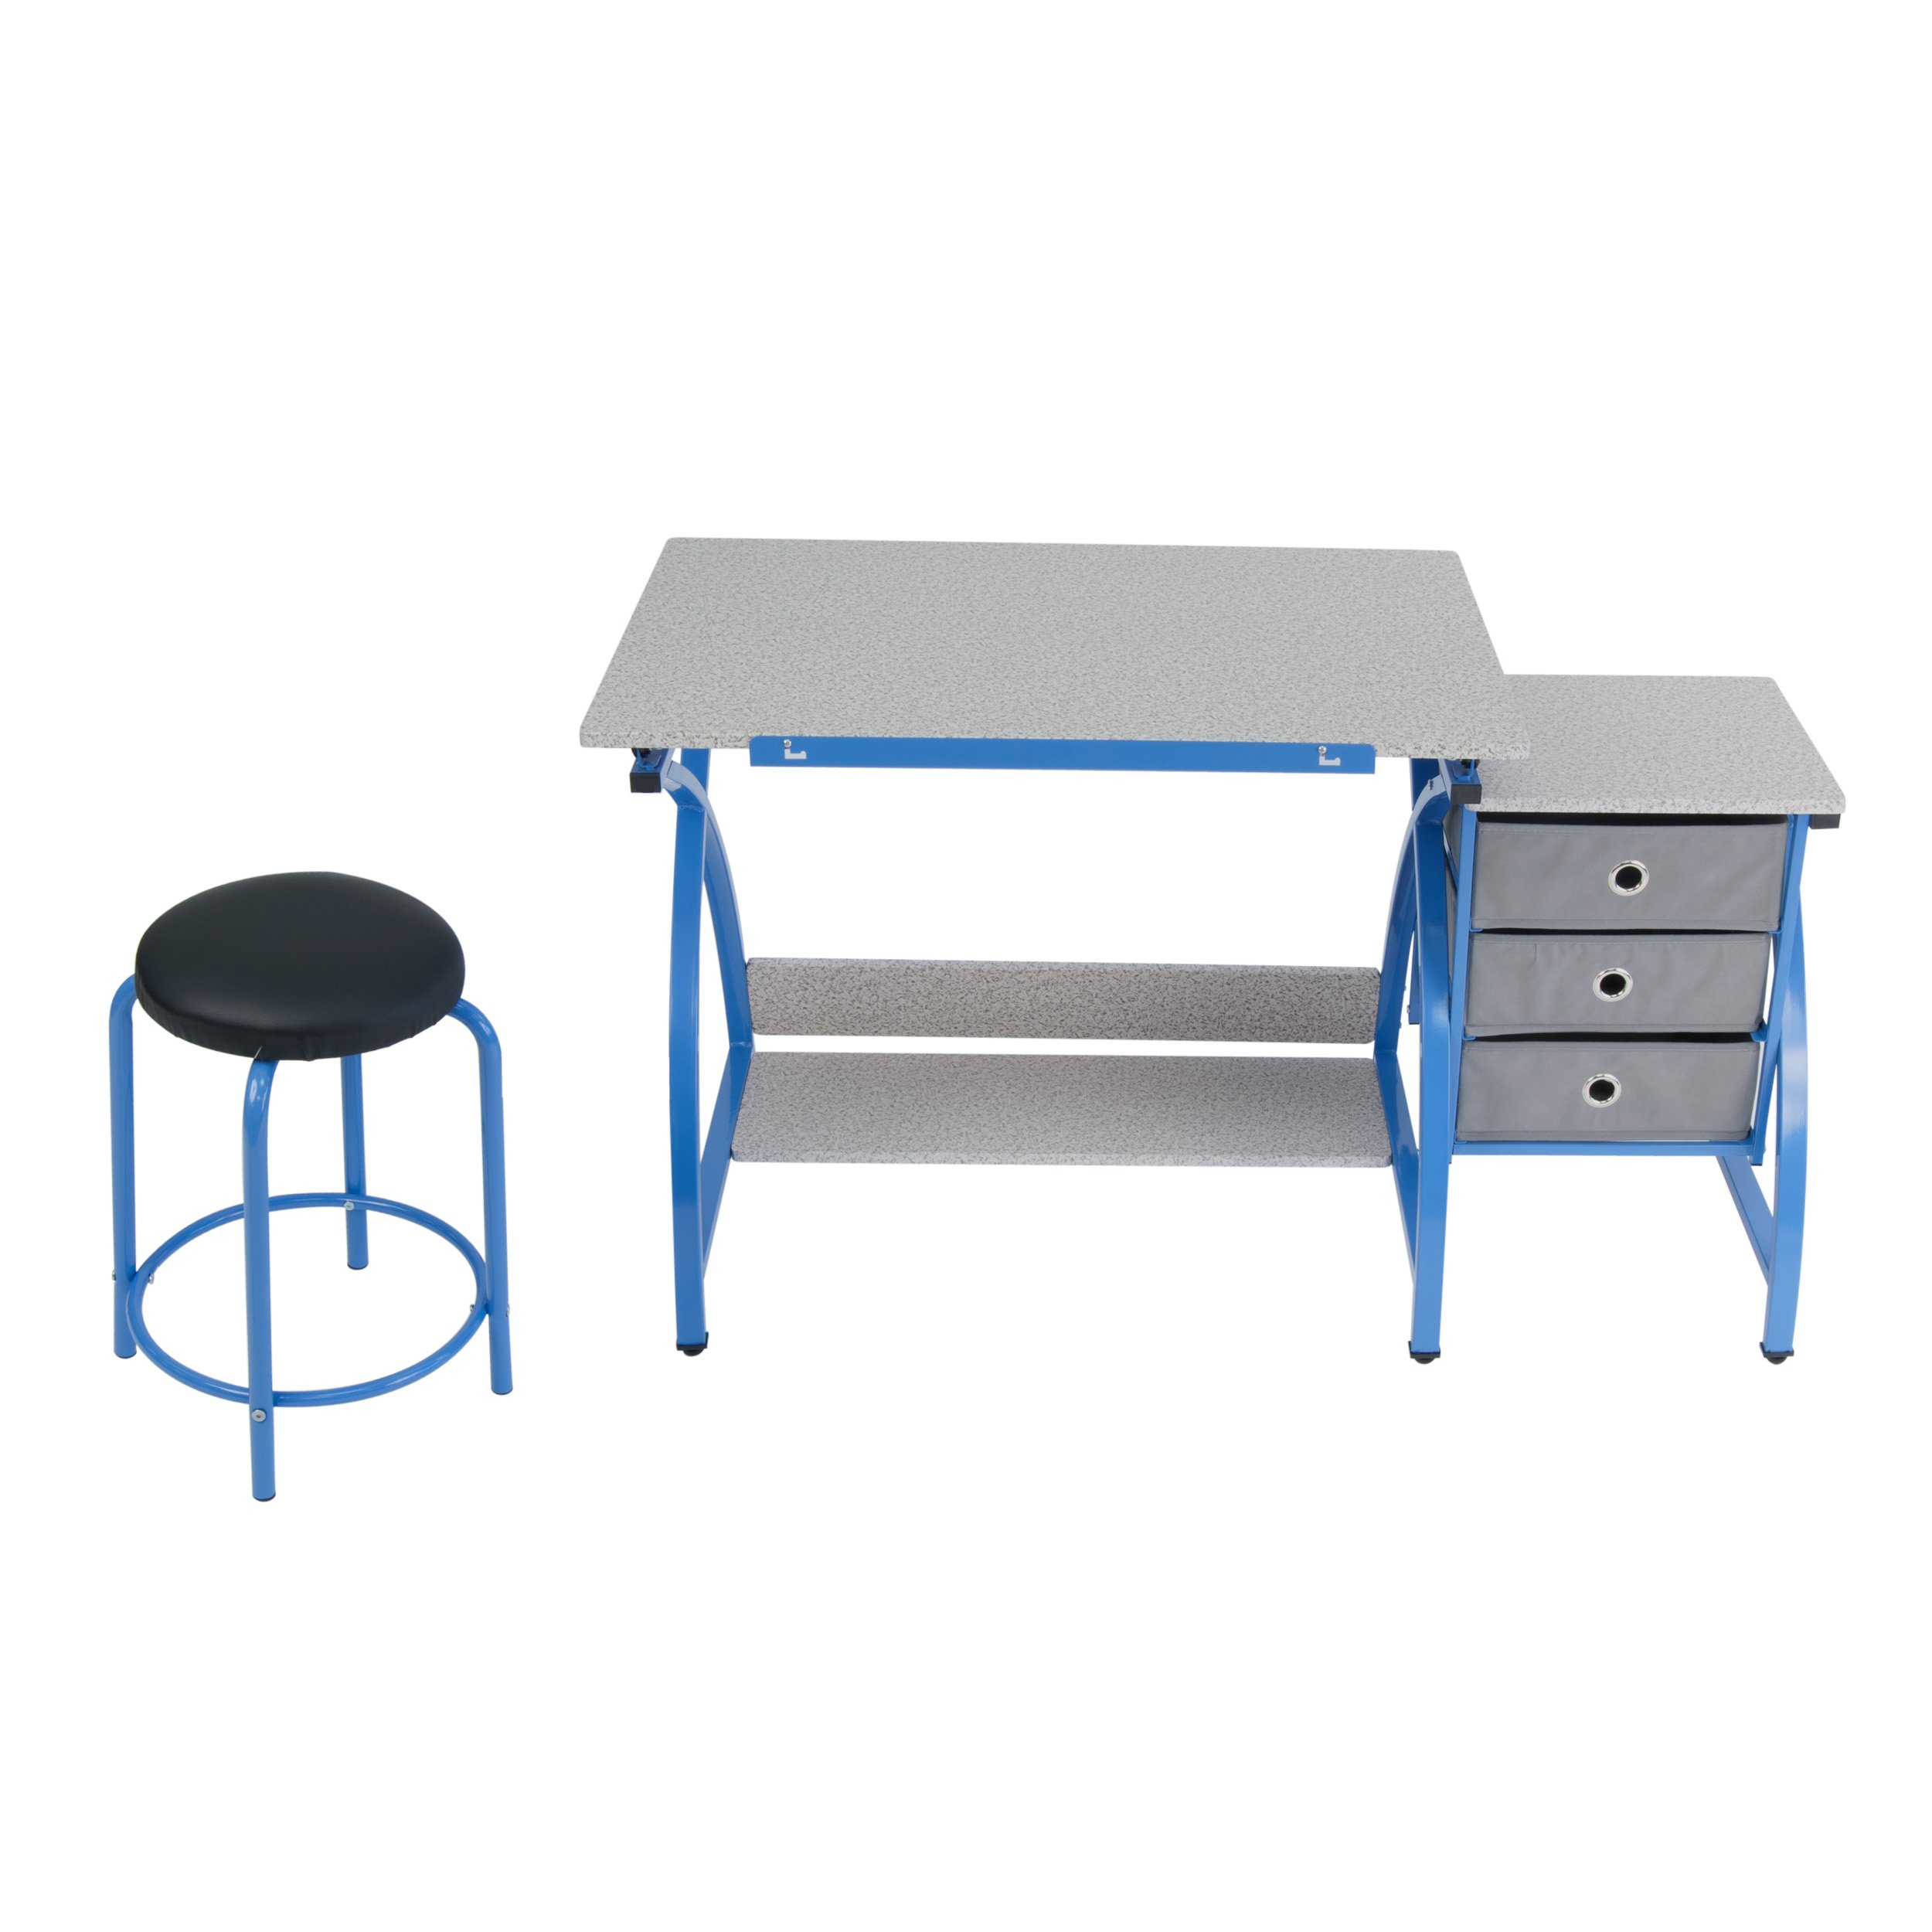 Comet Center with Stool in Blue / Spatter Gray by SD STUDIO DESIGNS (Image #3)